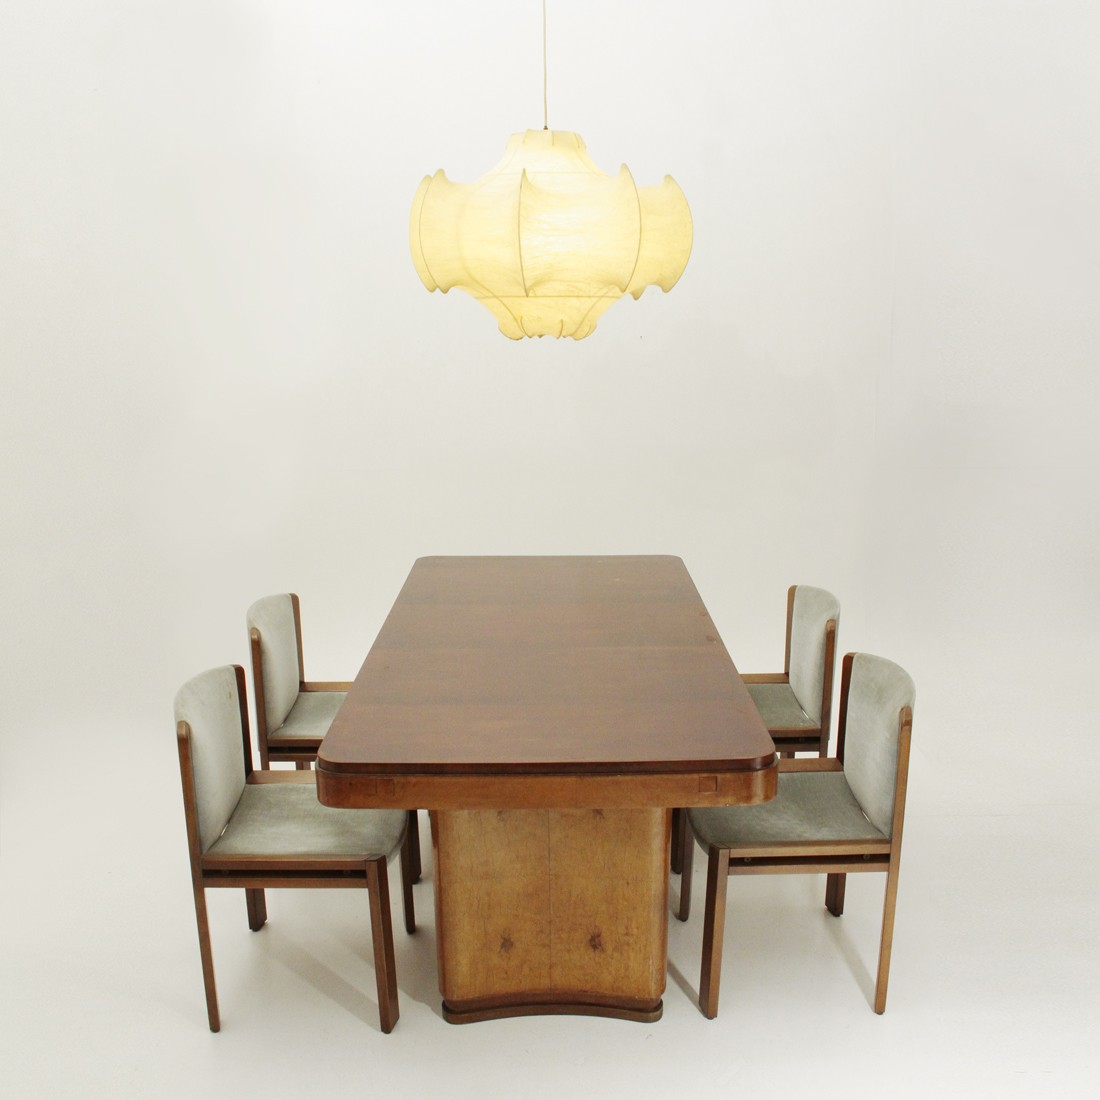 Vintage Italian Dining Table   1940s. Previous Next